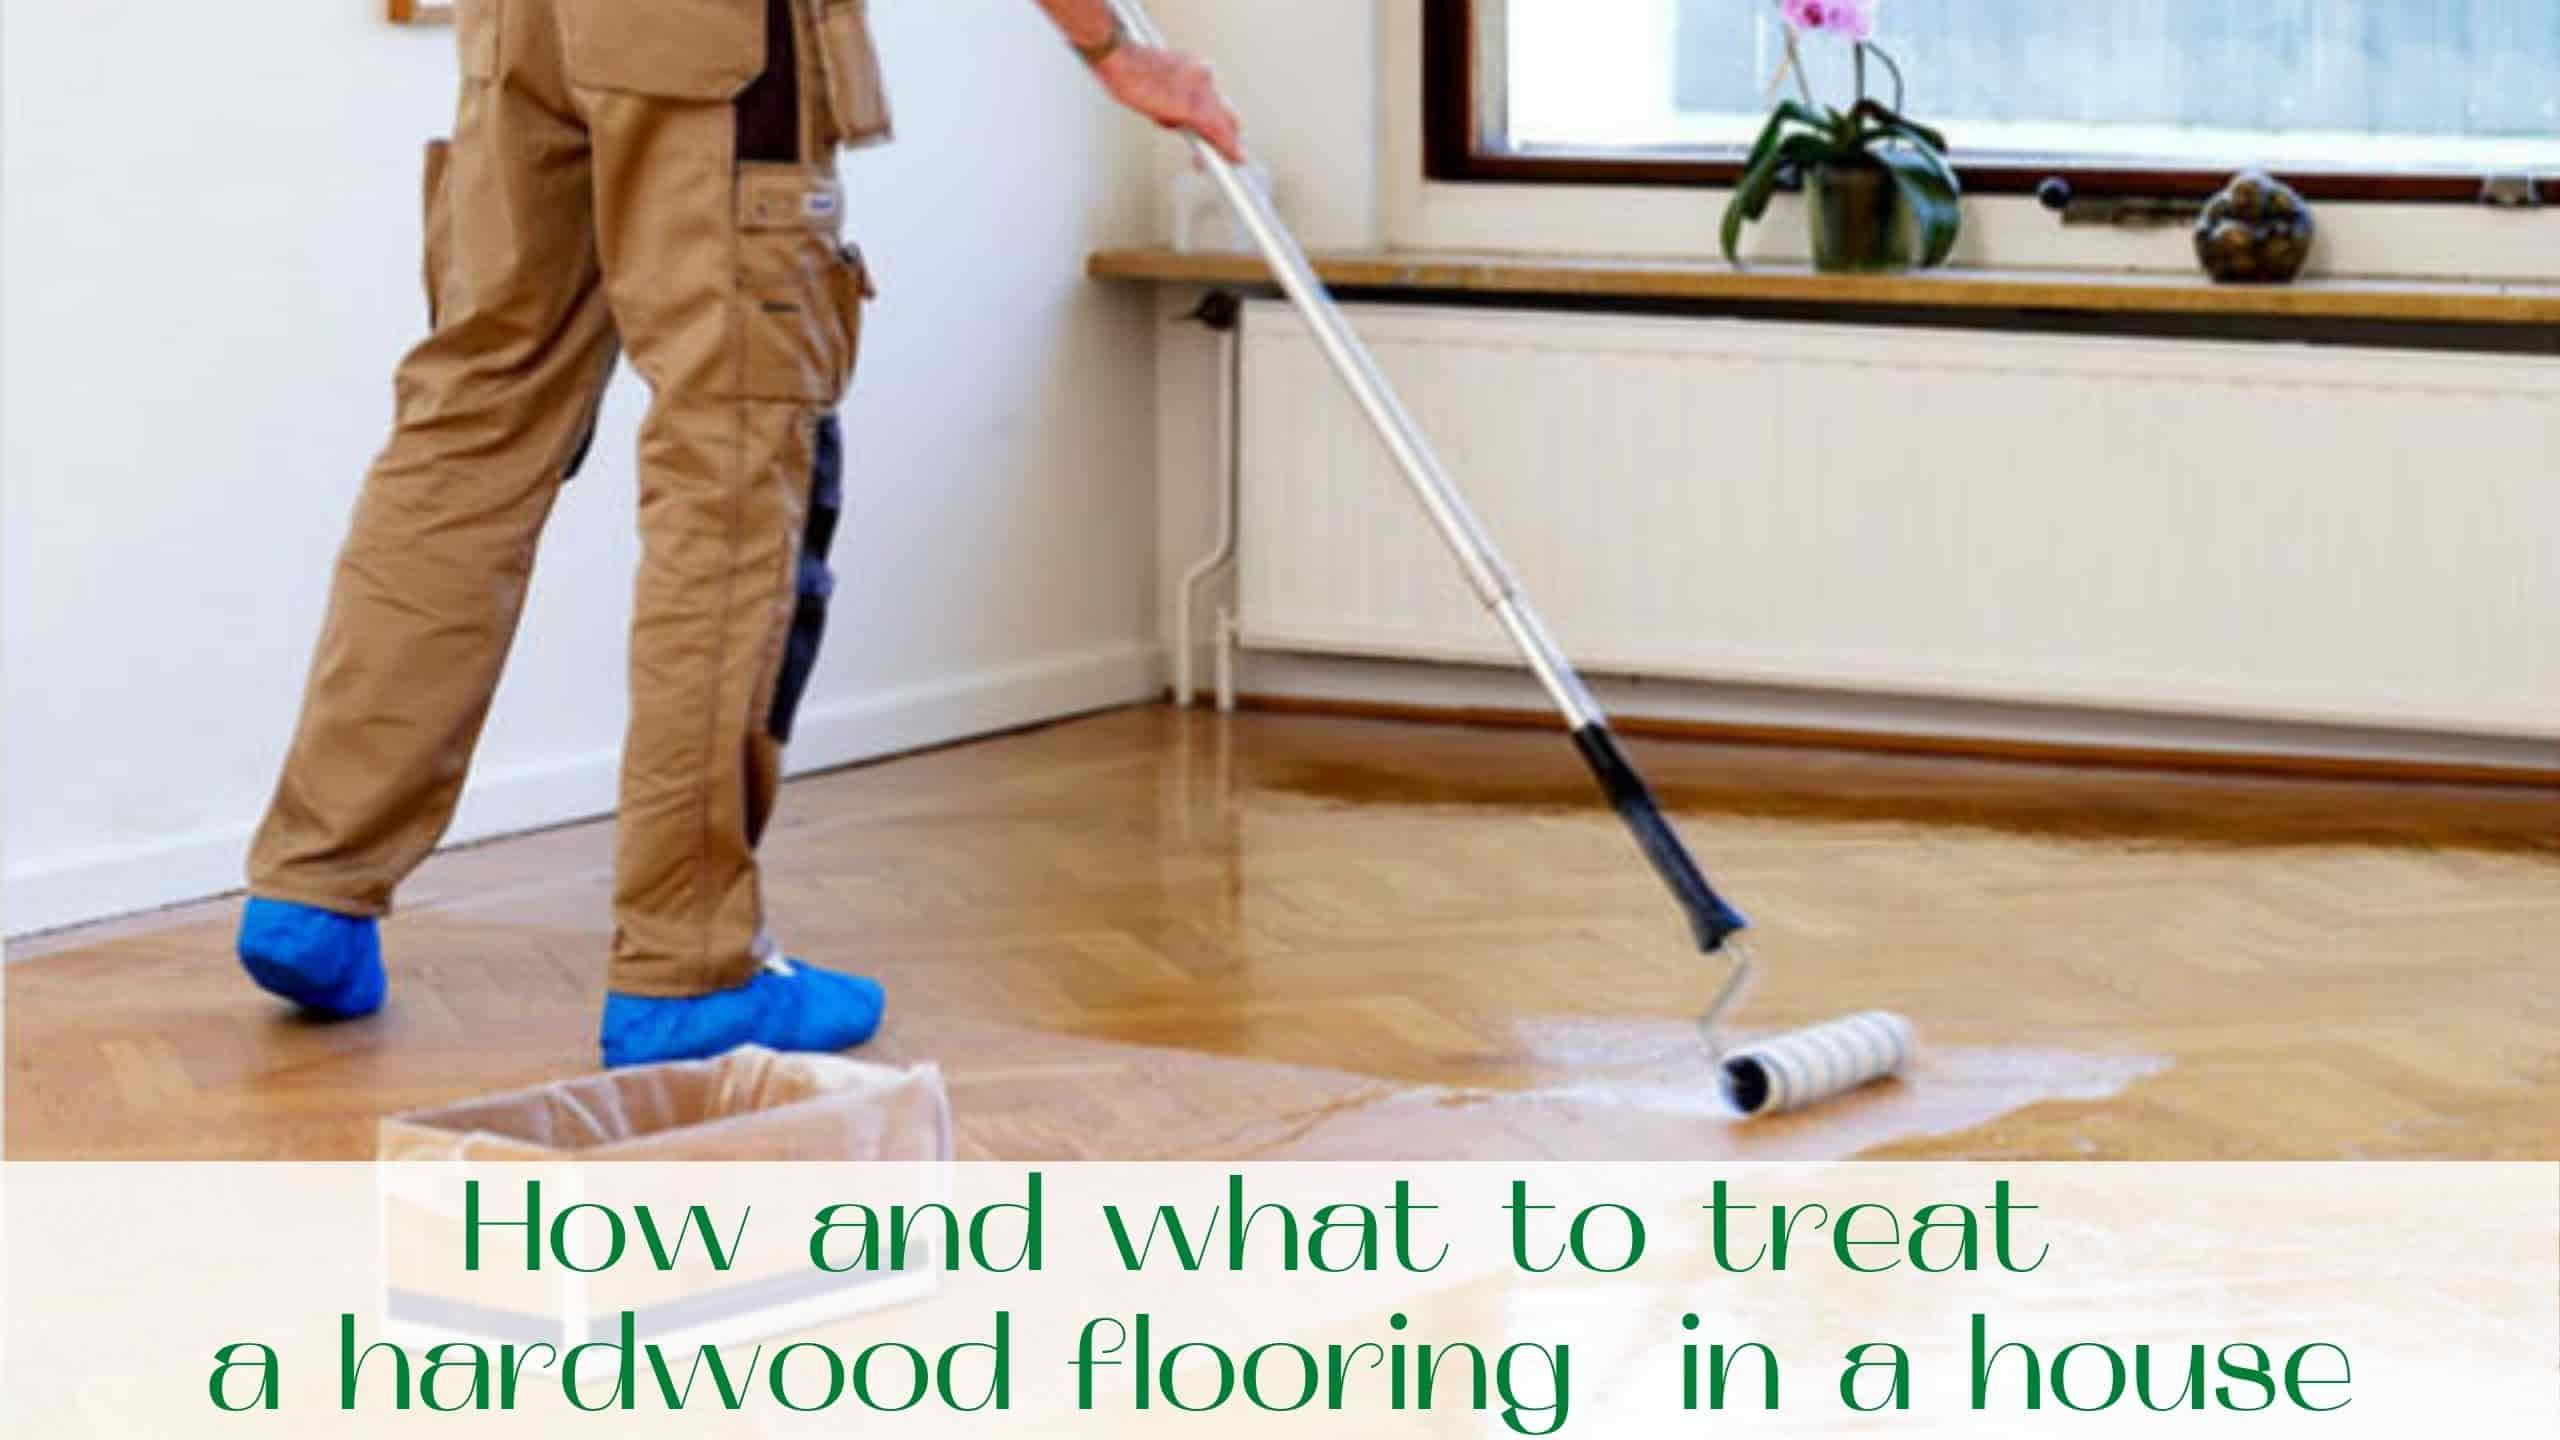 image-How-and-what-to-treat-a-hardwood-flooring-in-a-house